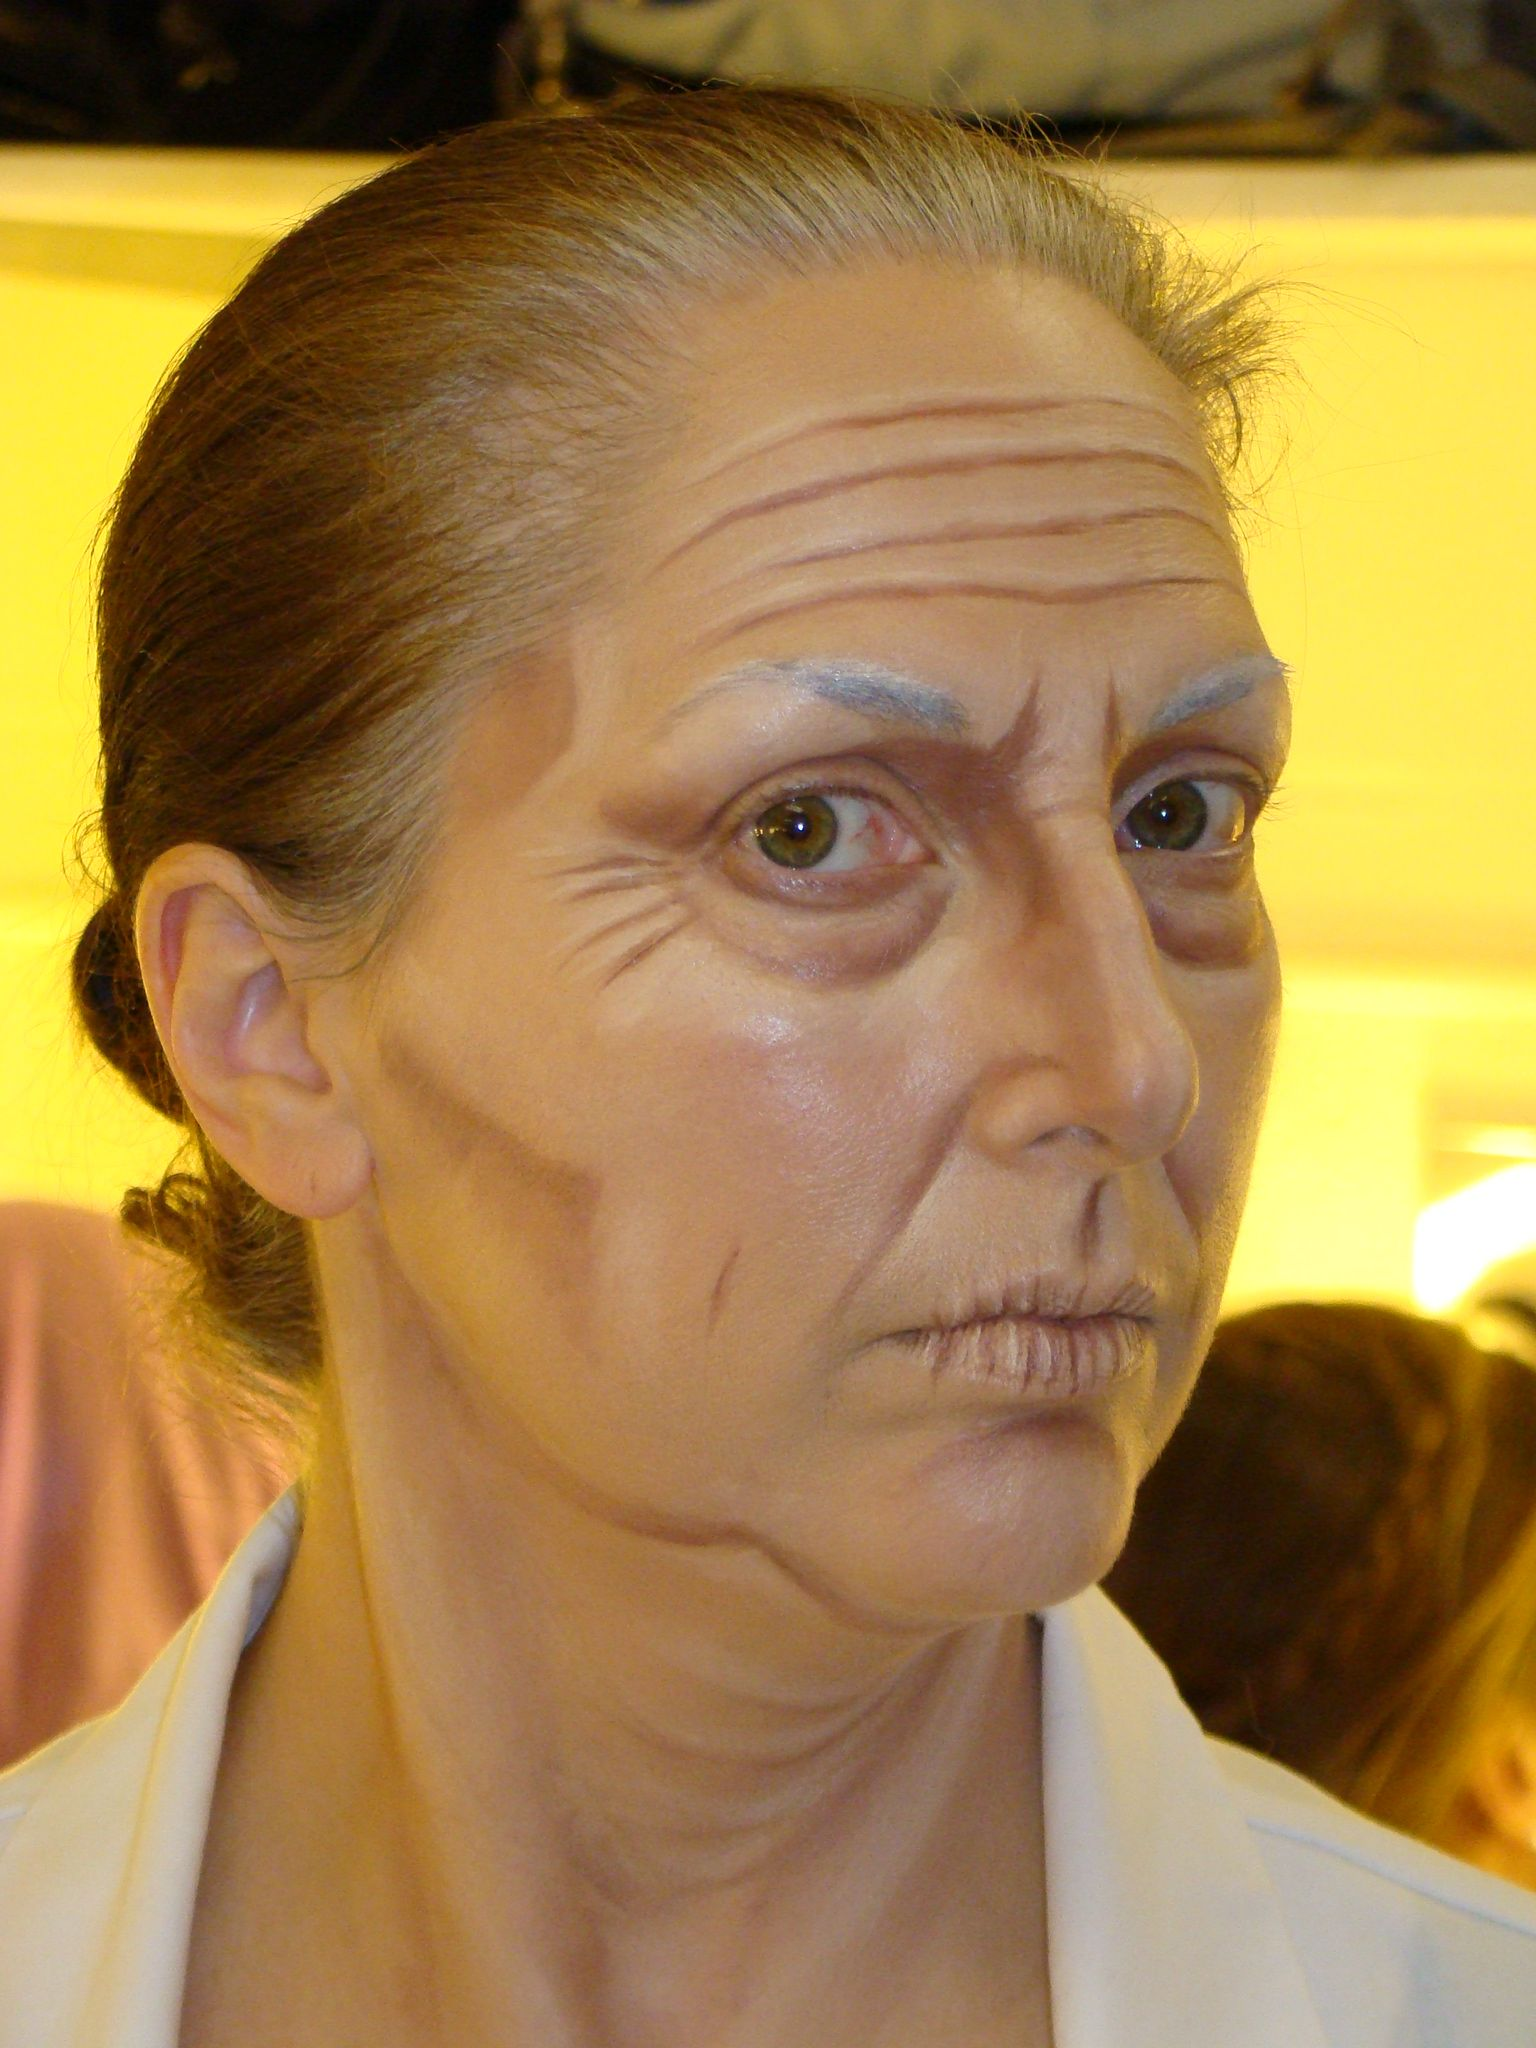 old age make up Google Search Old age makeup, Old man